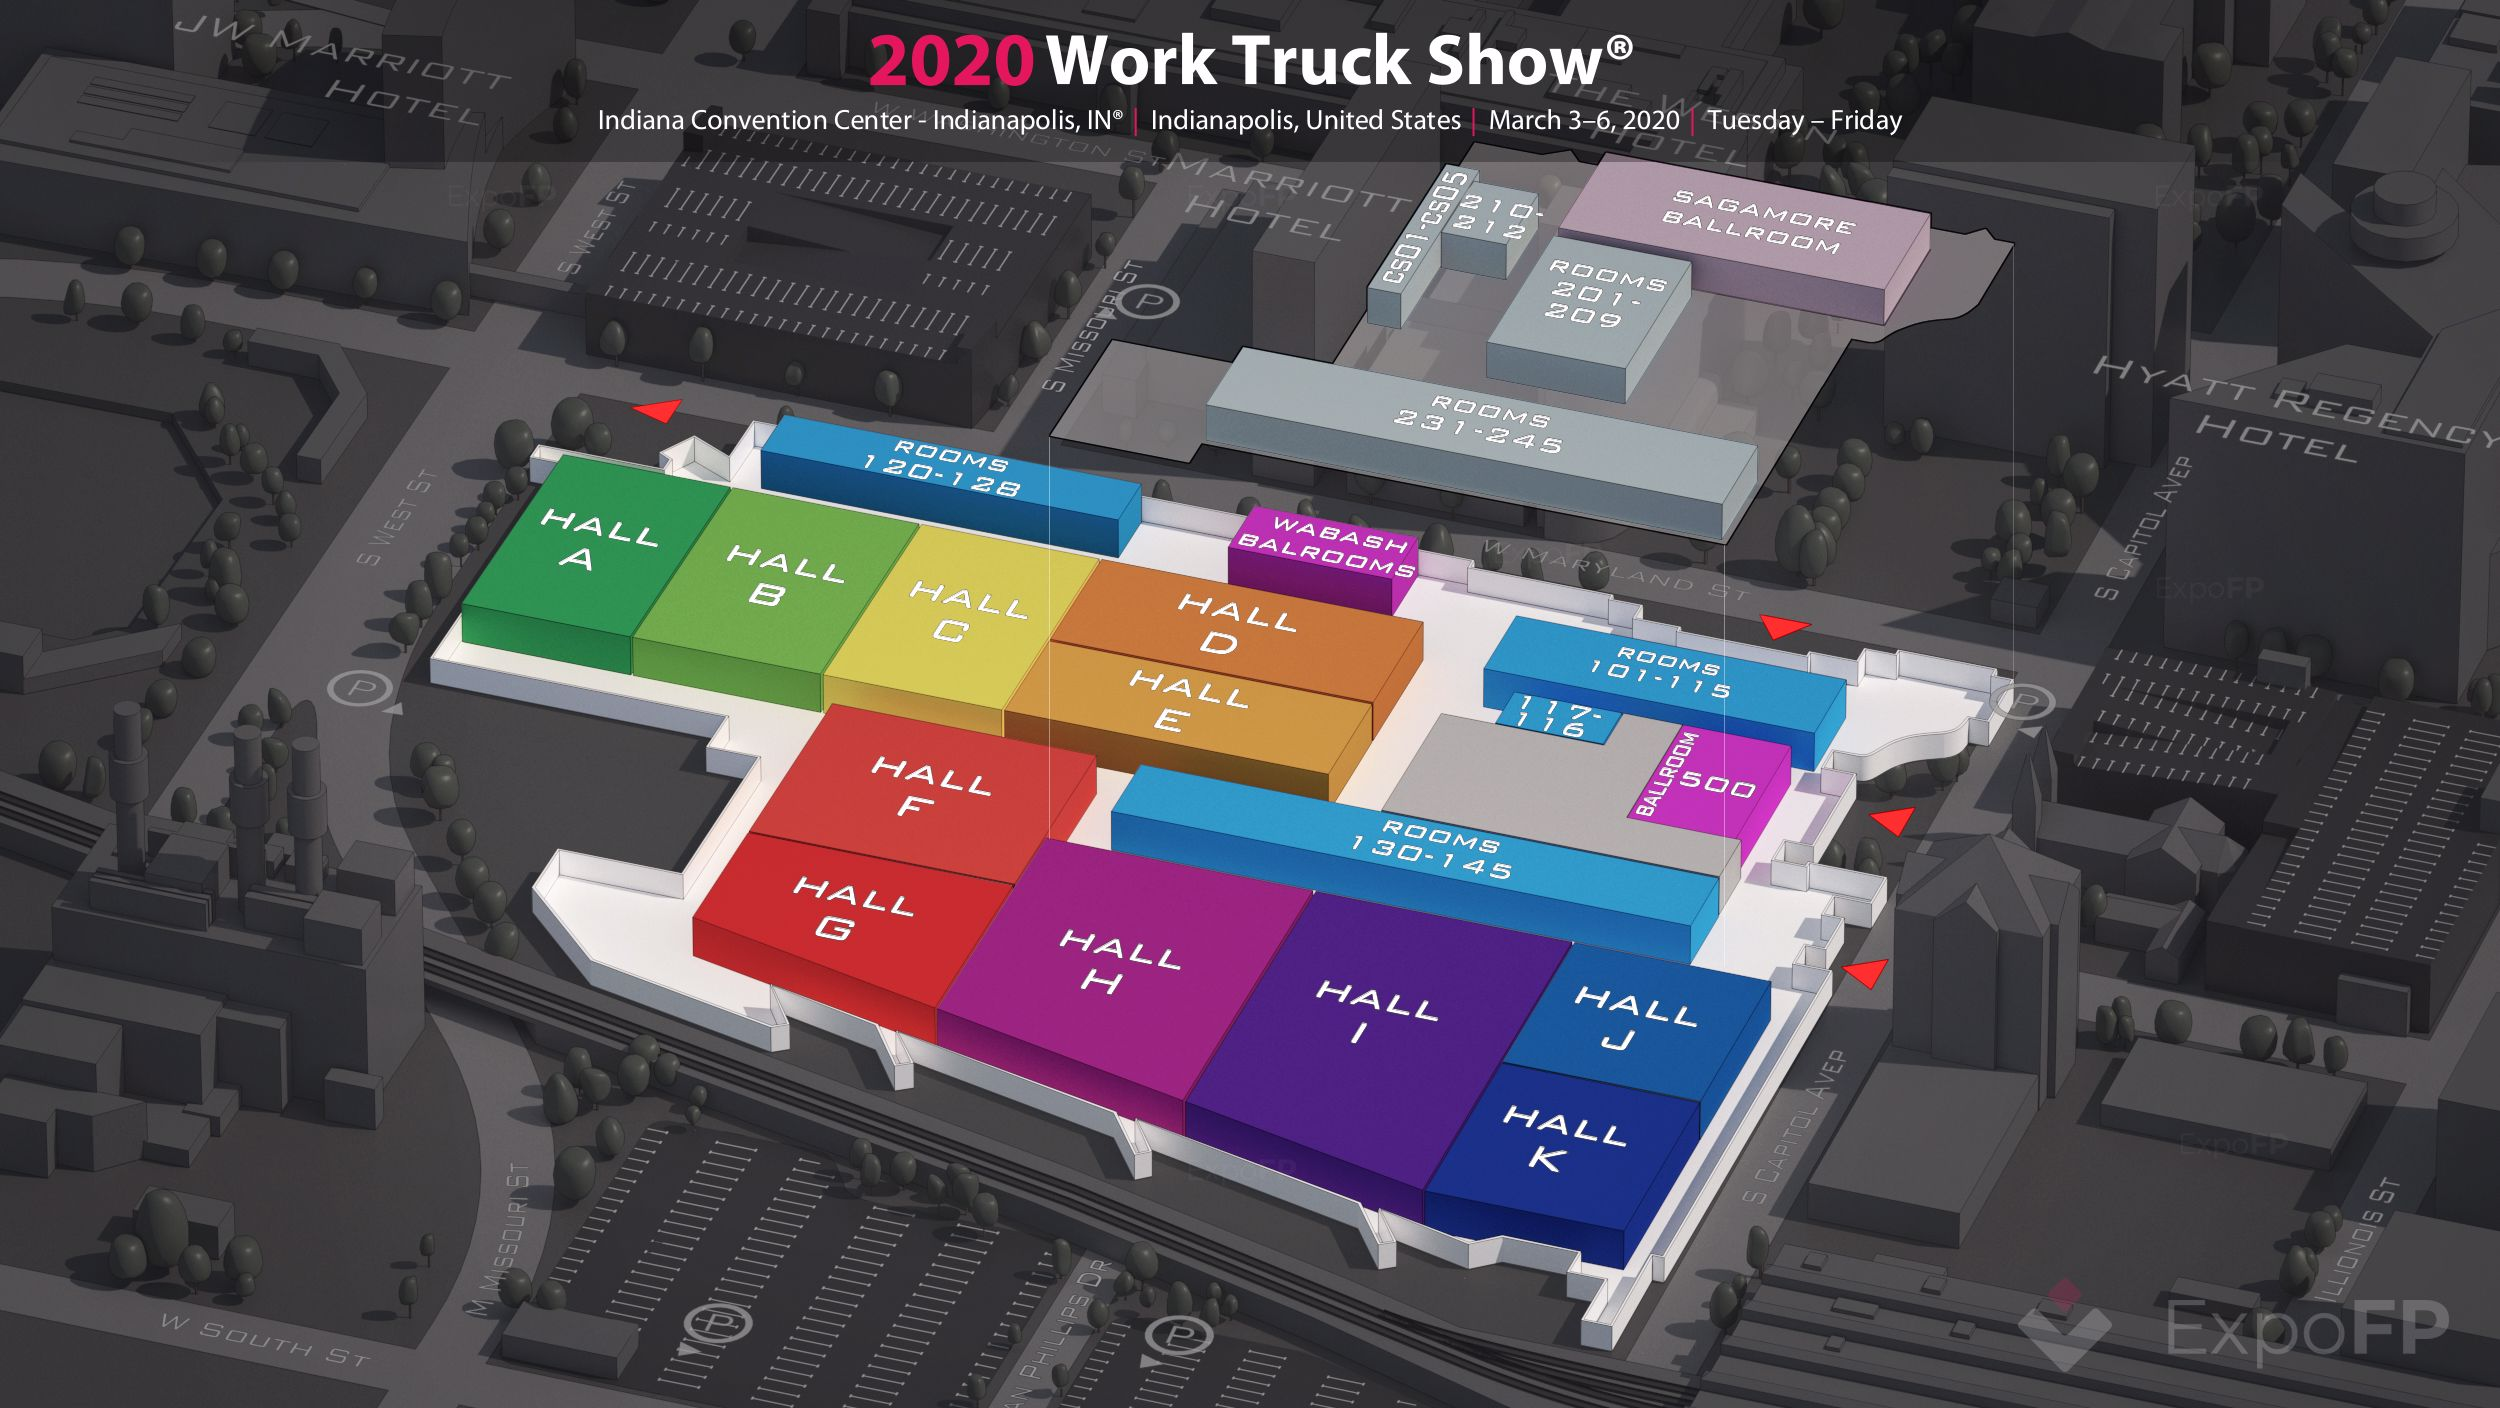 Truck Show 2020.Work Truck Show 2020 In Indiana Convention Center